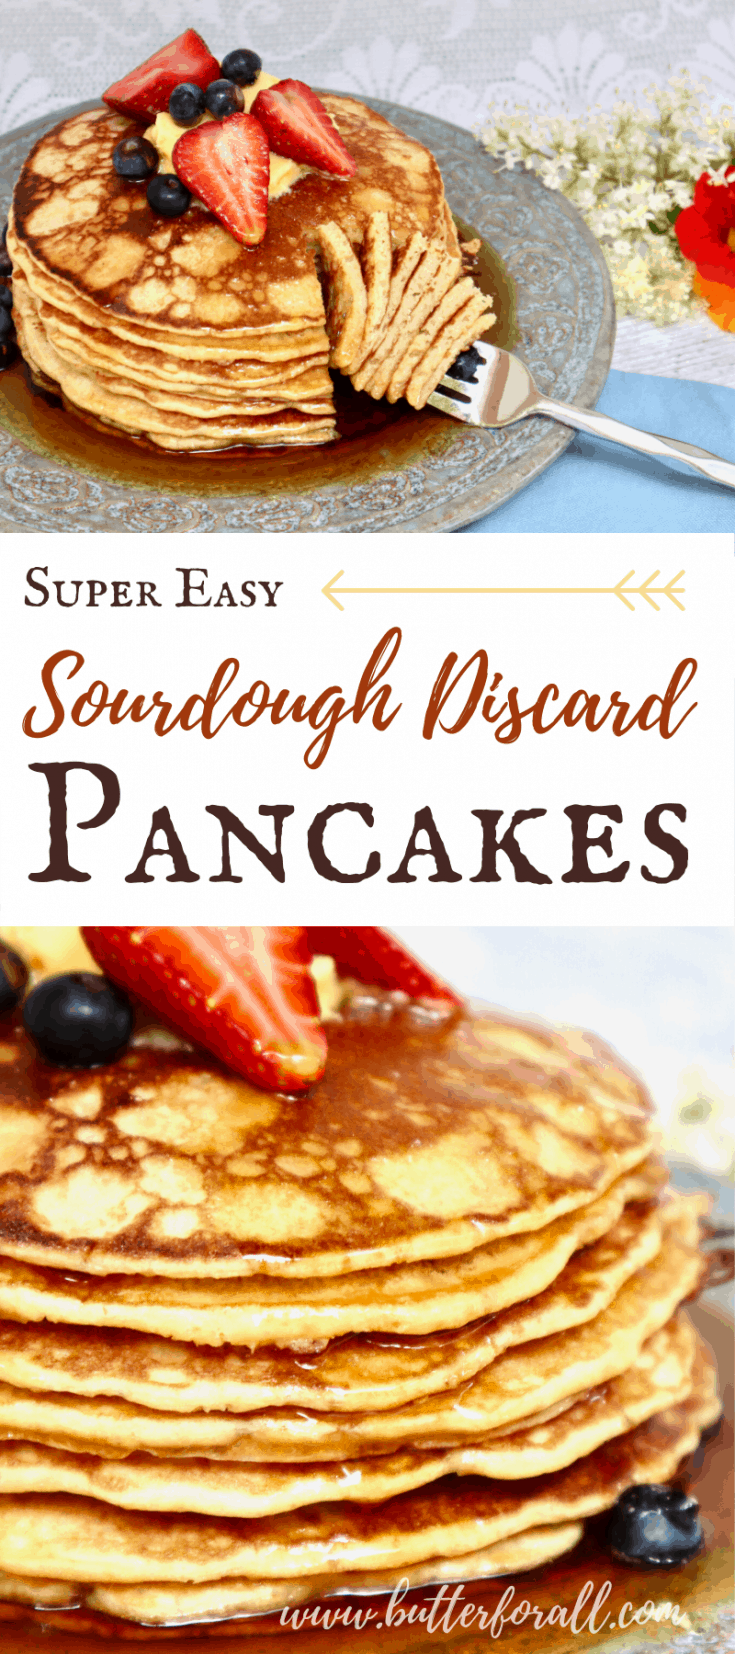 A collage of stacks of sourdough pancakes with text overlay.